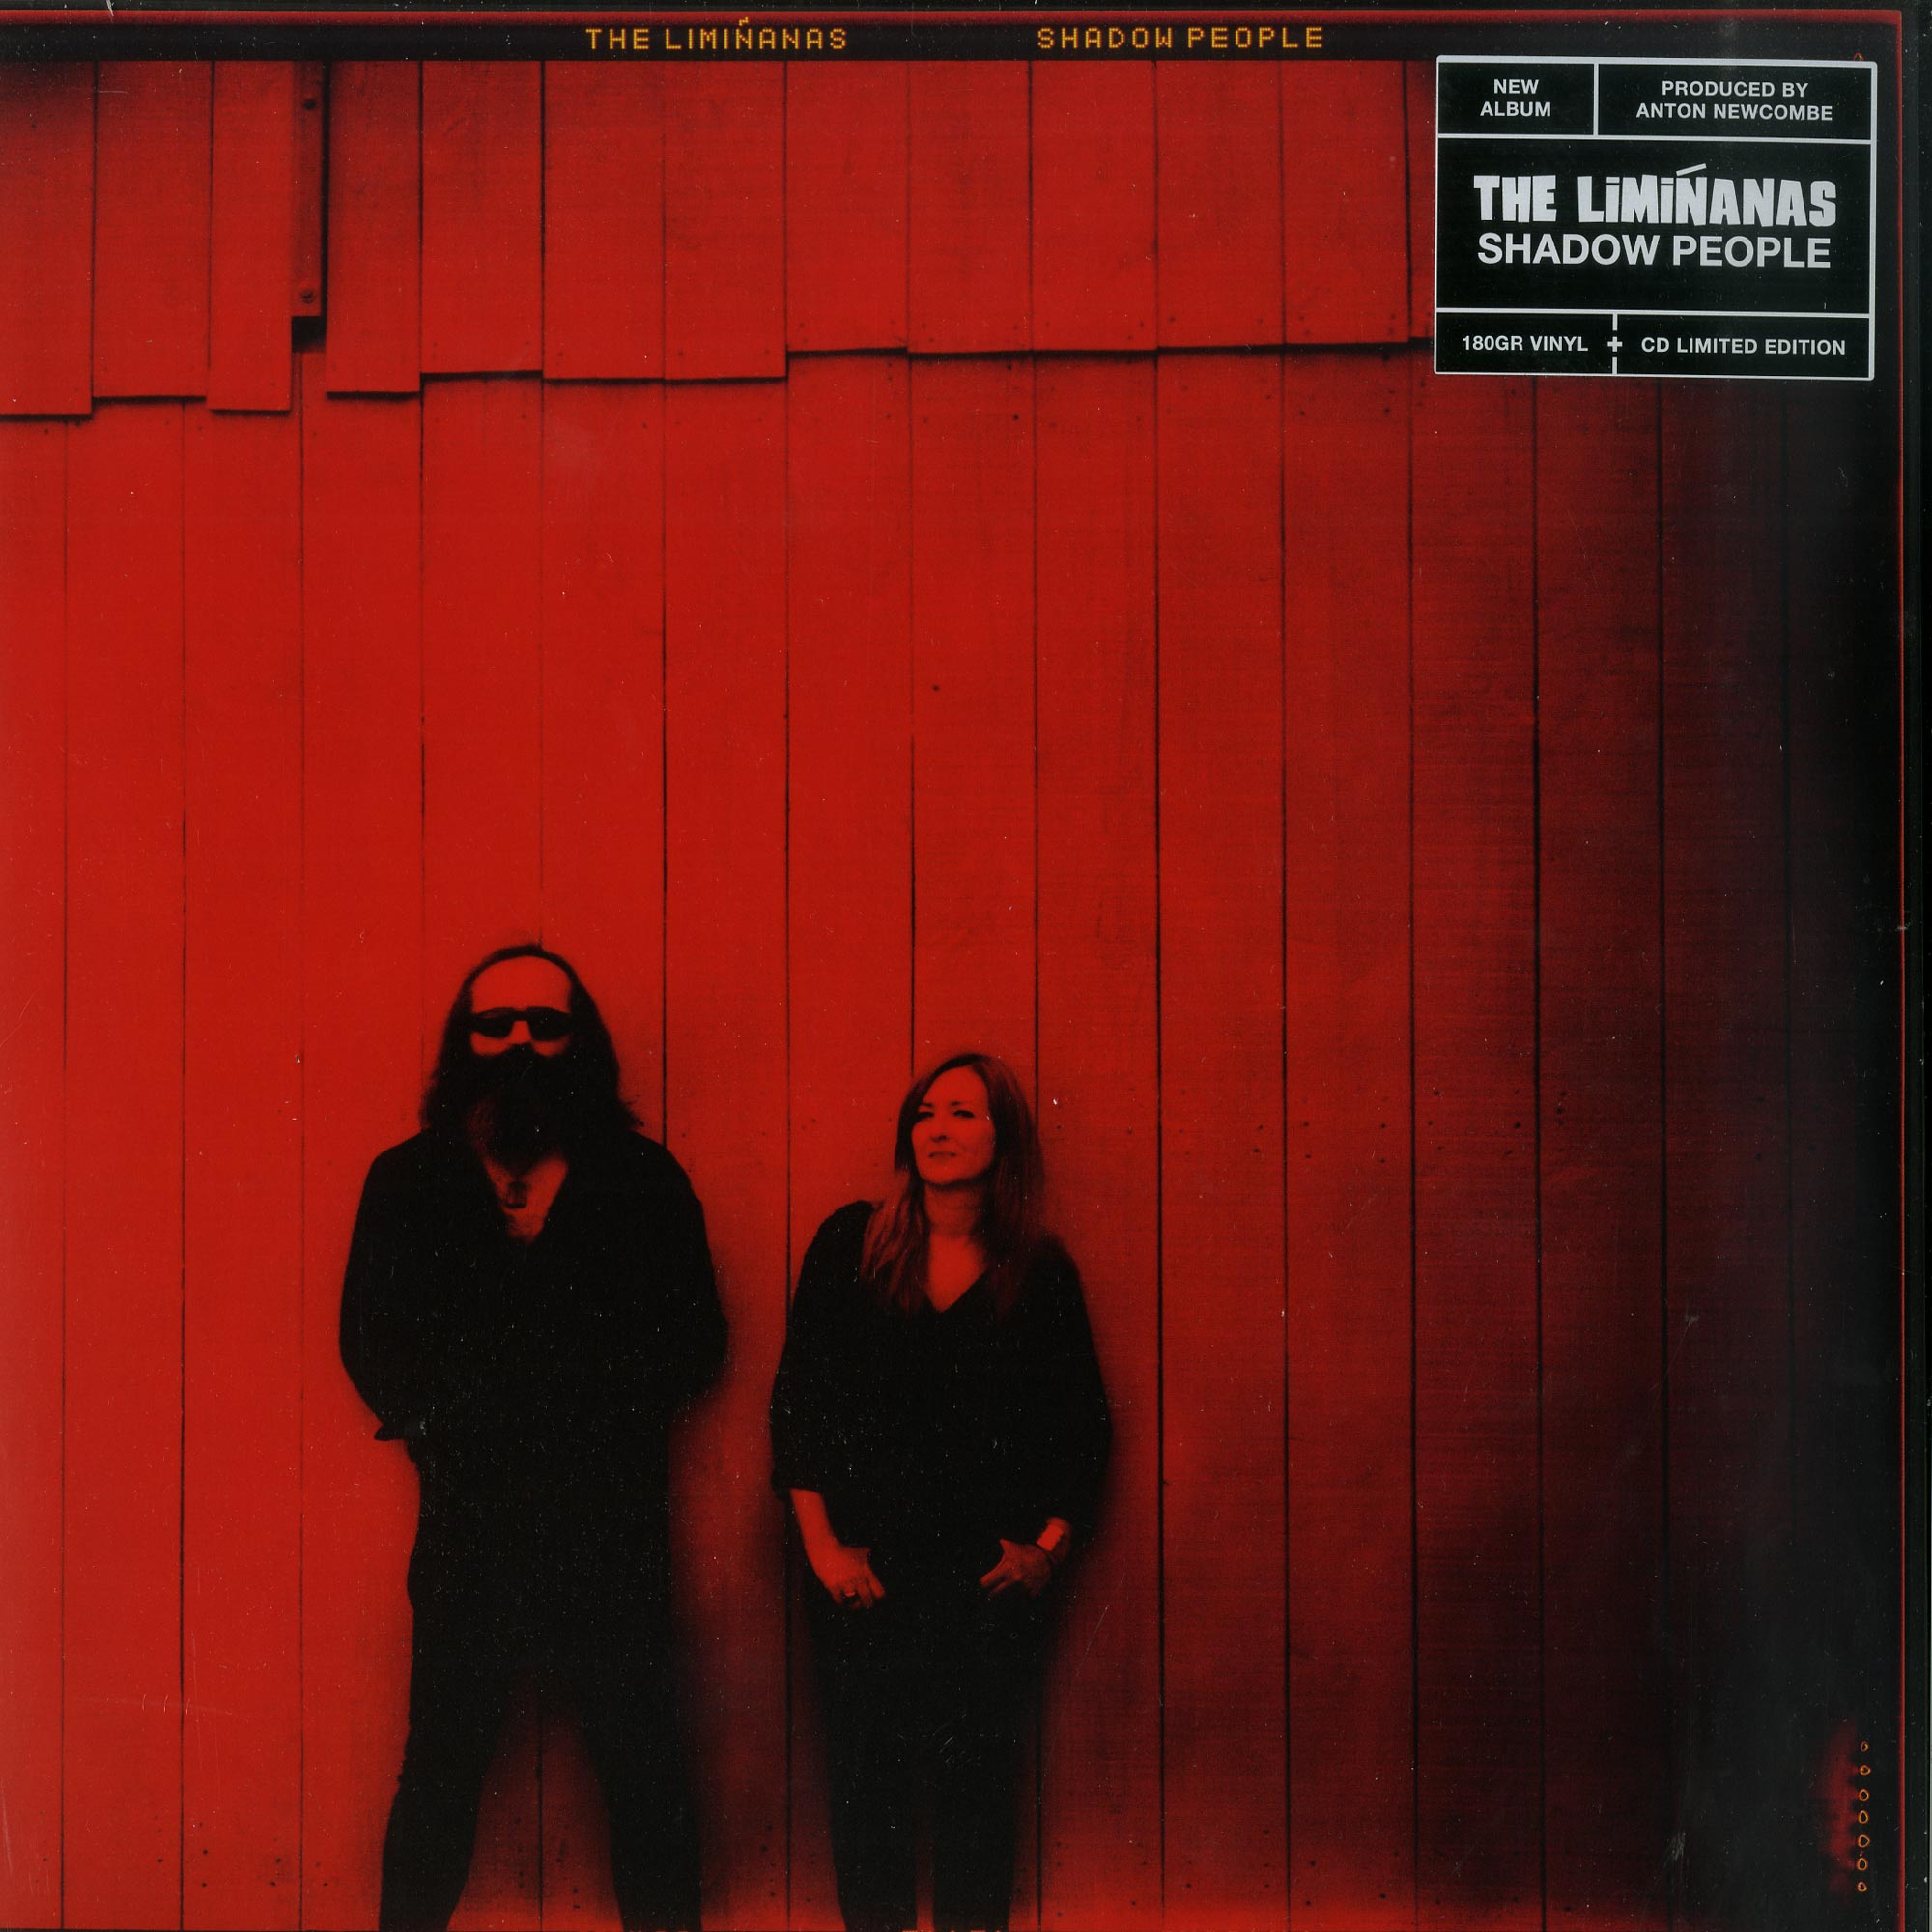 The Liminanas - SHADOW PEOPLE